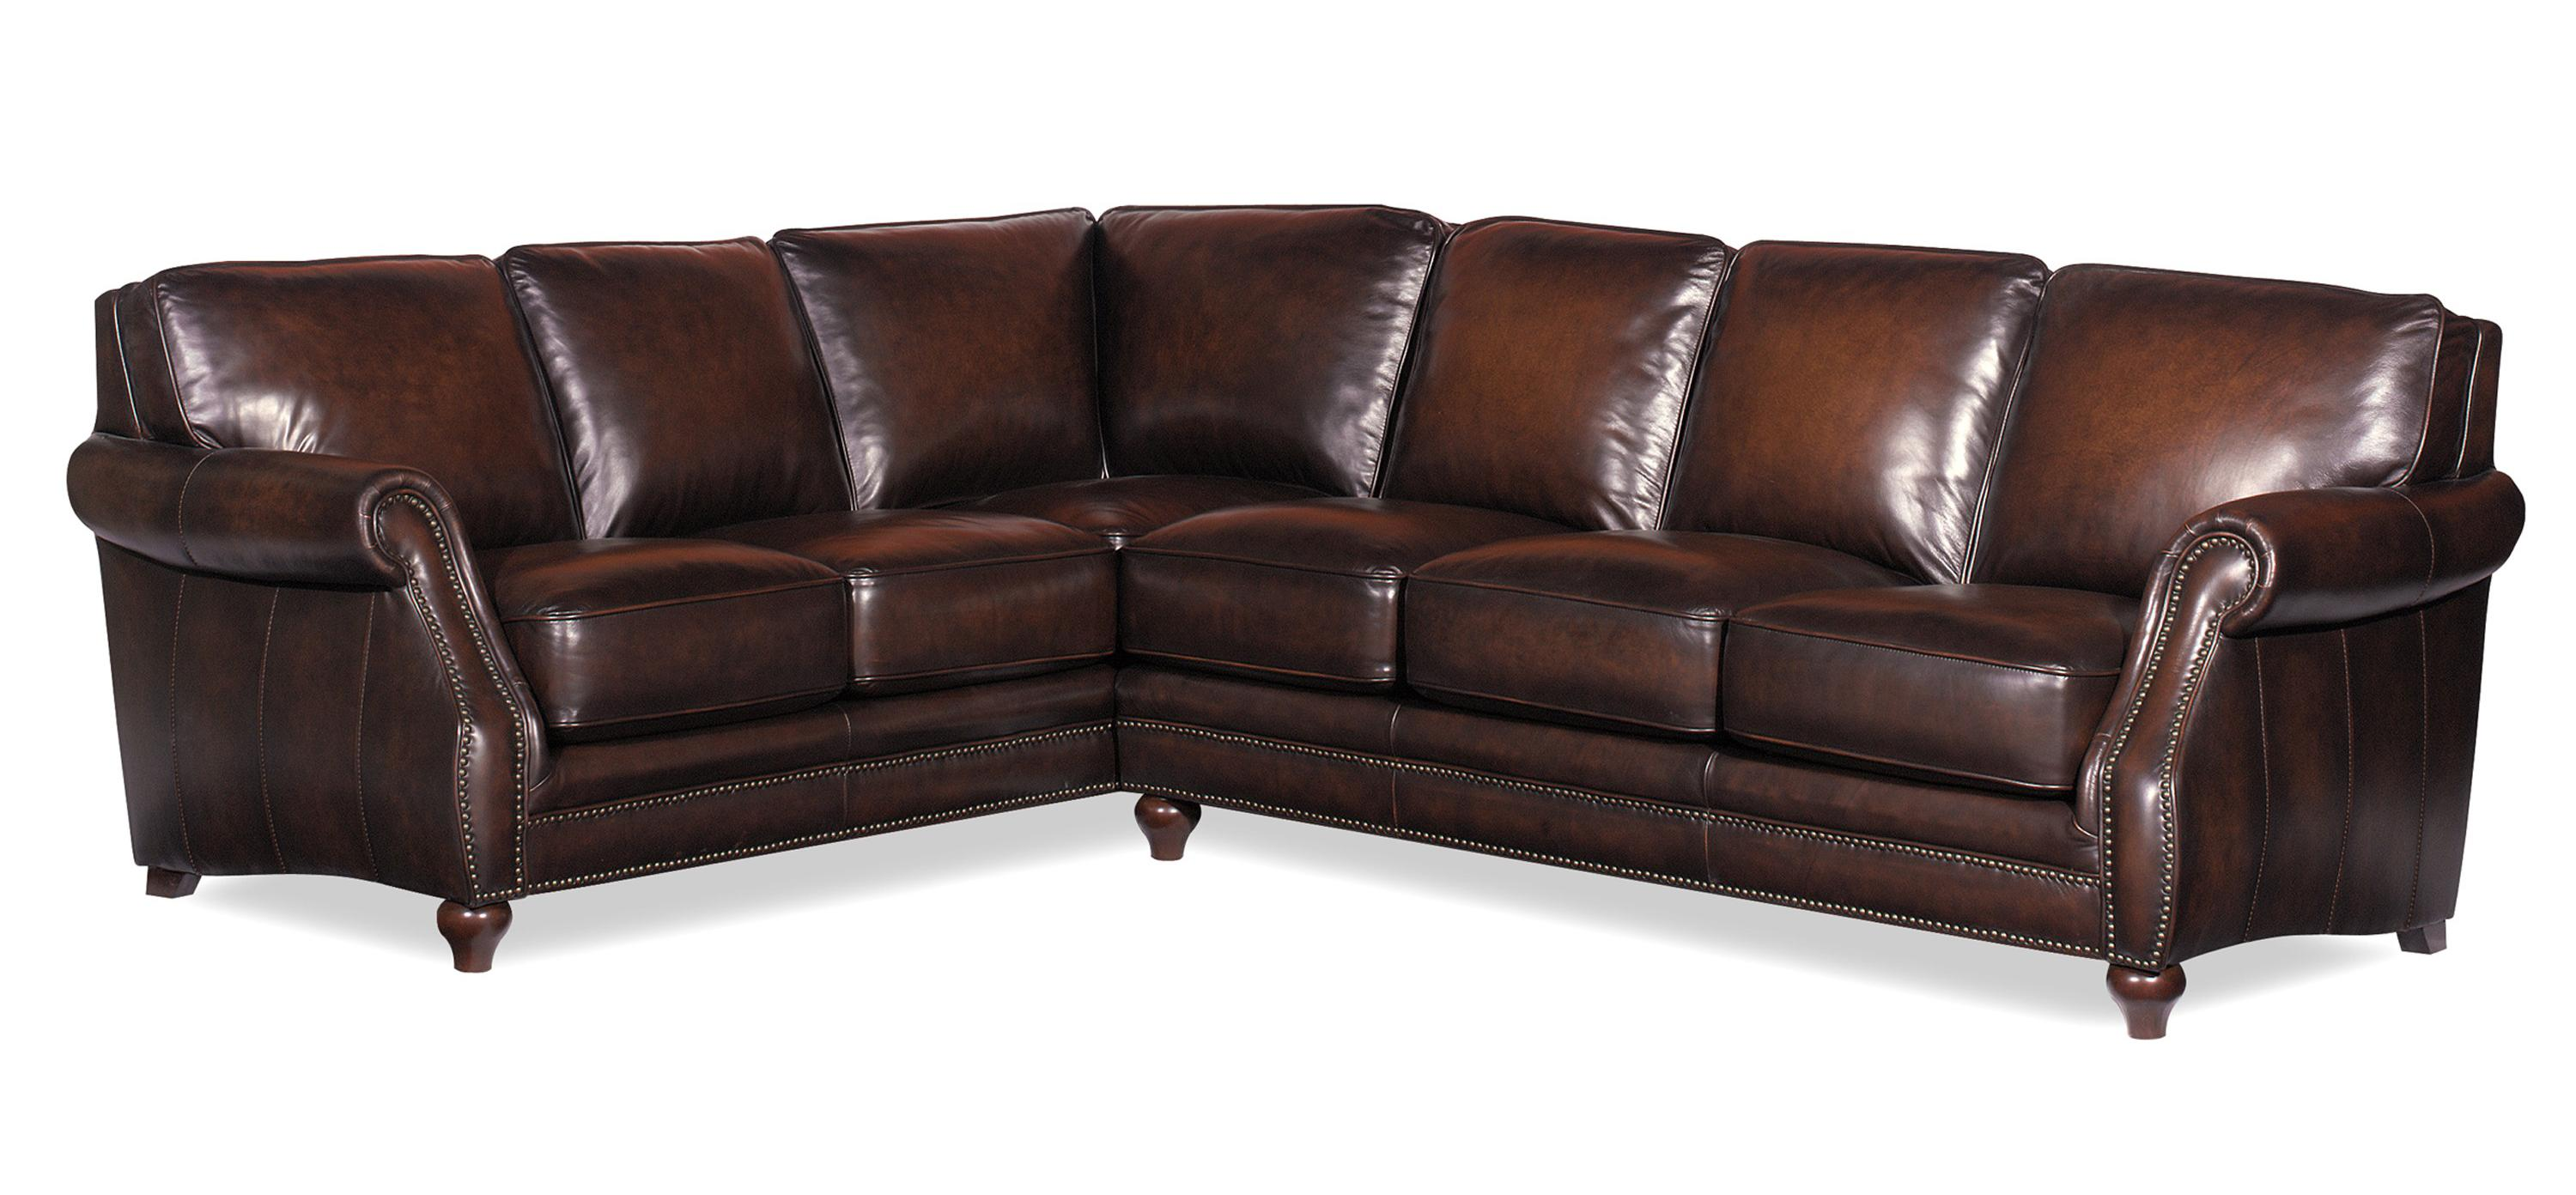 L121500 Traditional Two Piece Leather Sectional Sofa With Rolled Arms And Nailhead Trim By Craftmaster